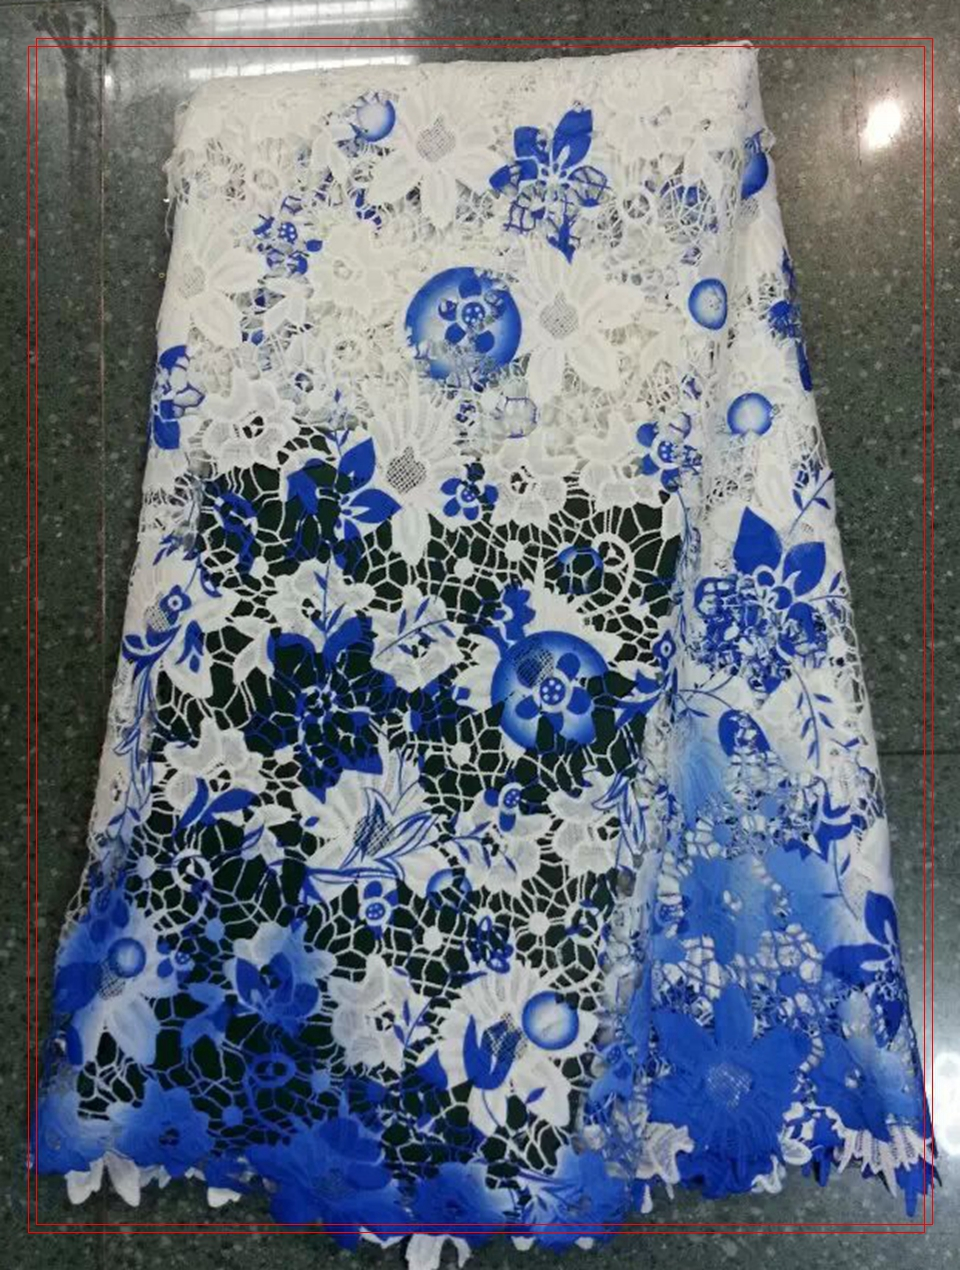 French Tulle Net Lace African Embroidery Chantilly Fabric Swiss Voile Lace Dress